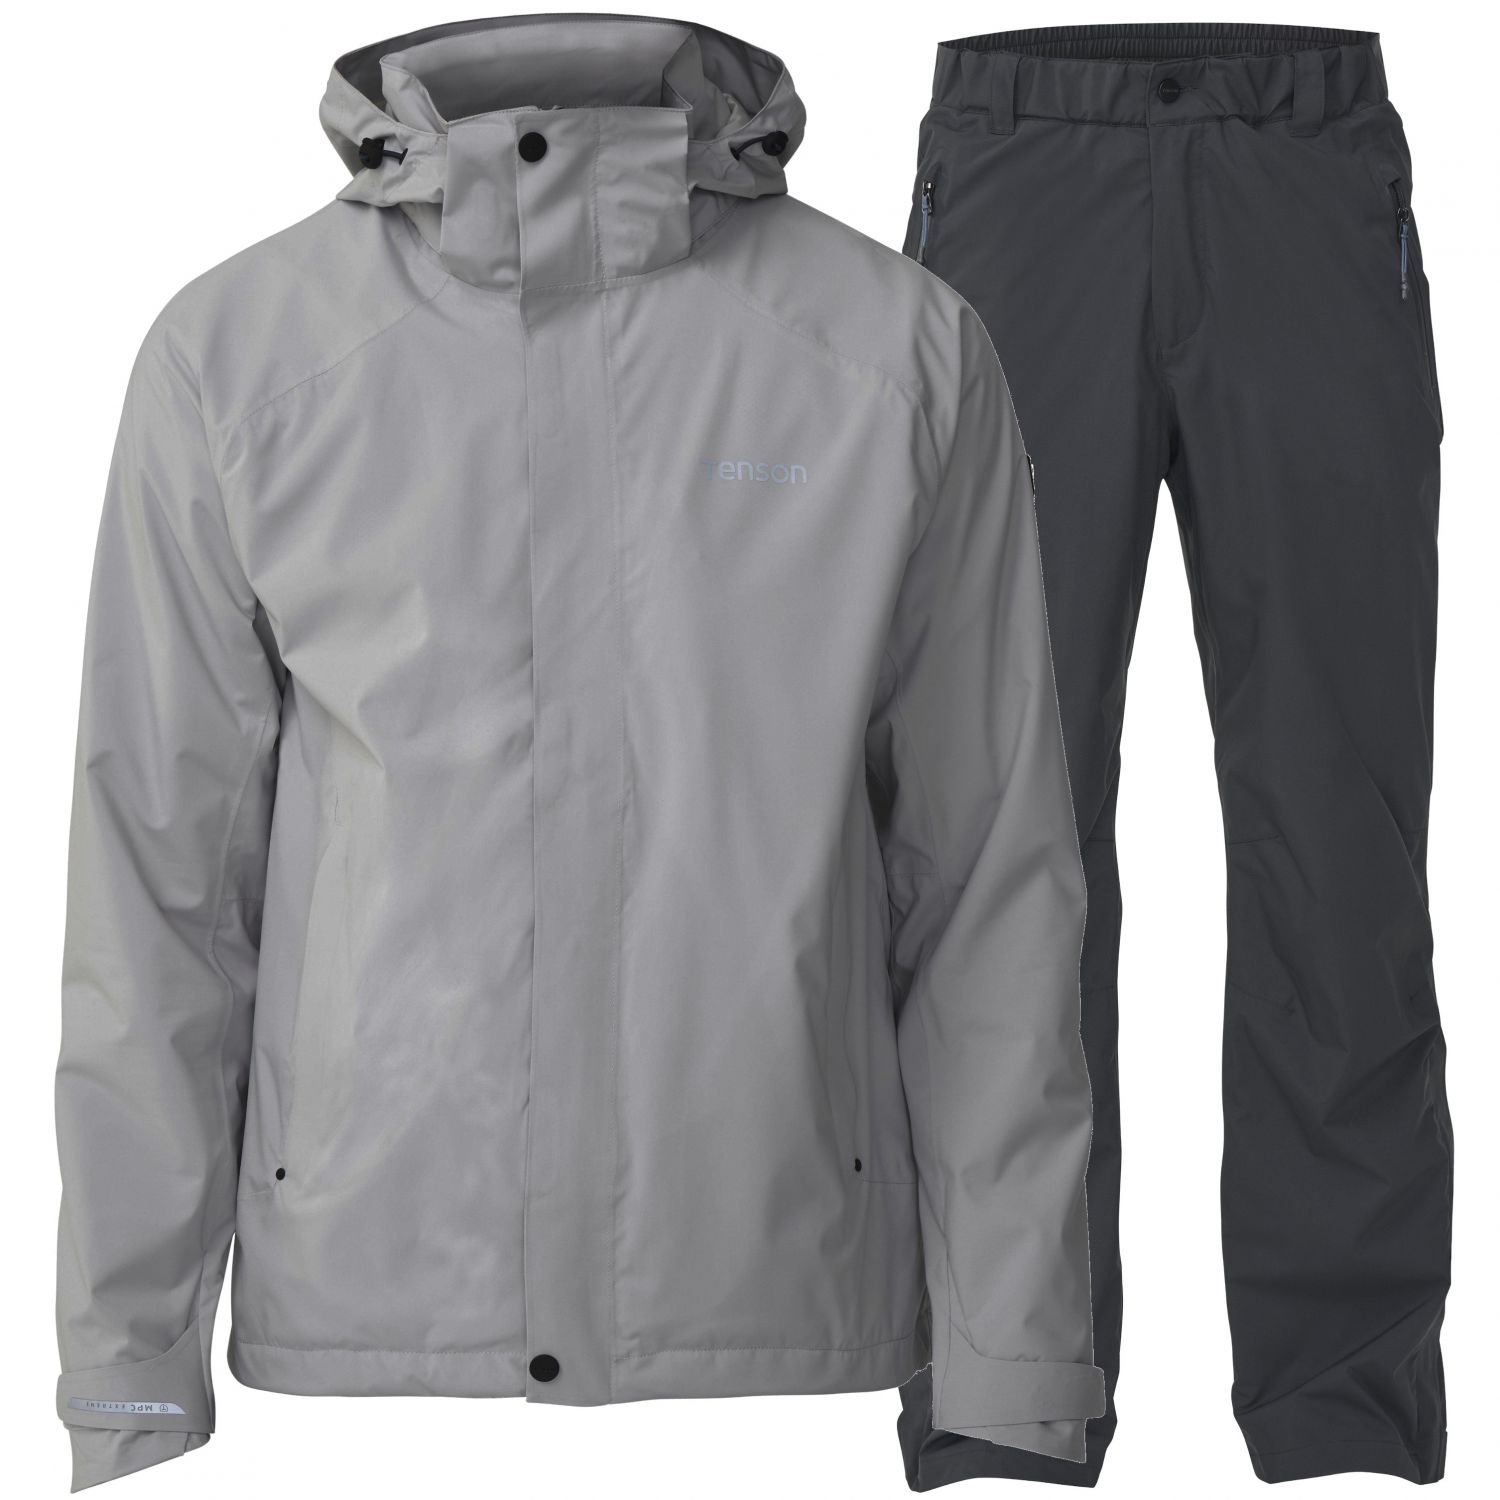 Tenson Biscaya Rain set, men, grey